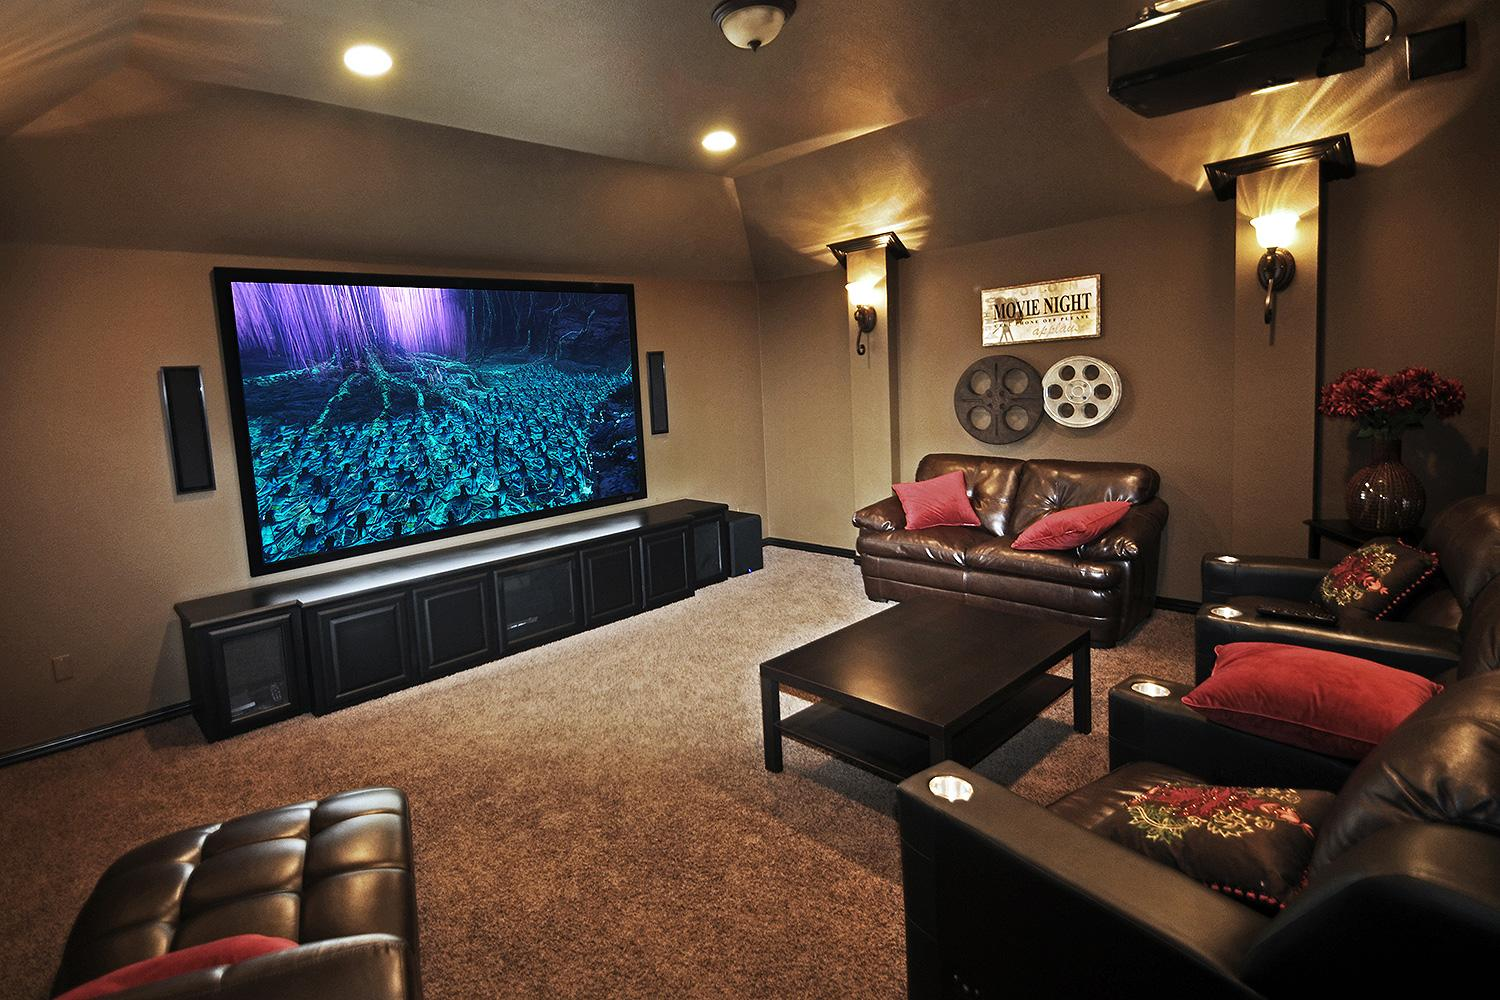 Bringing the Movies into Your Home:  How to Choose a Home Theater System